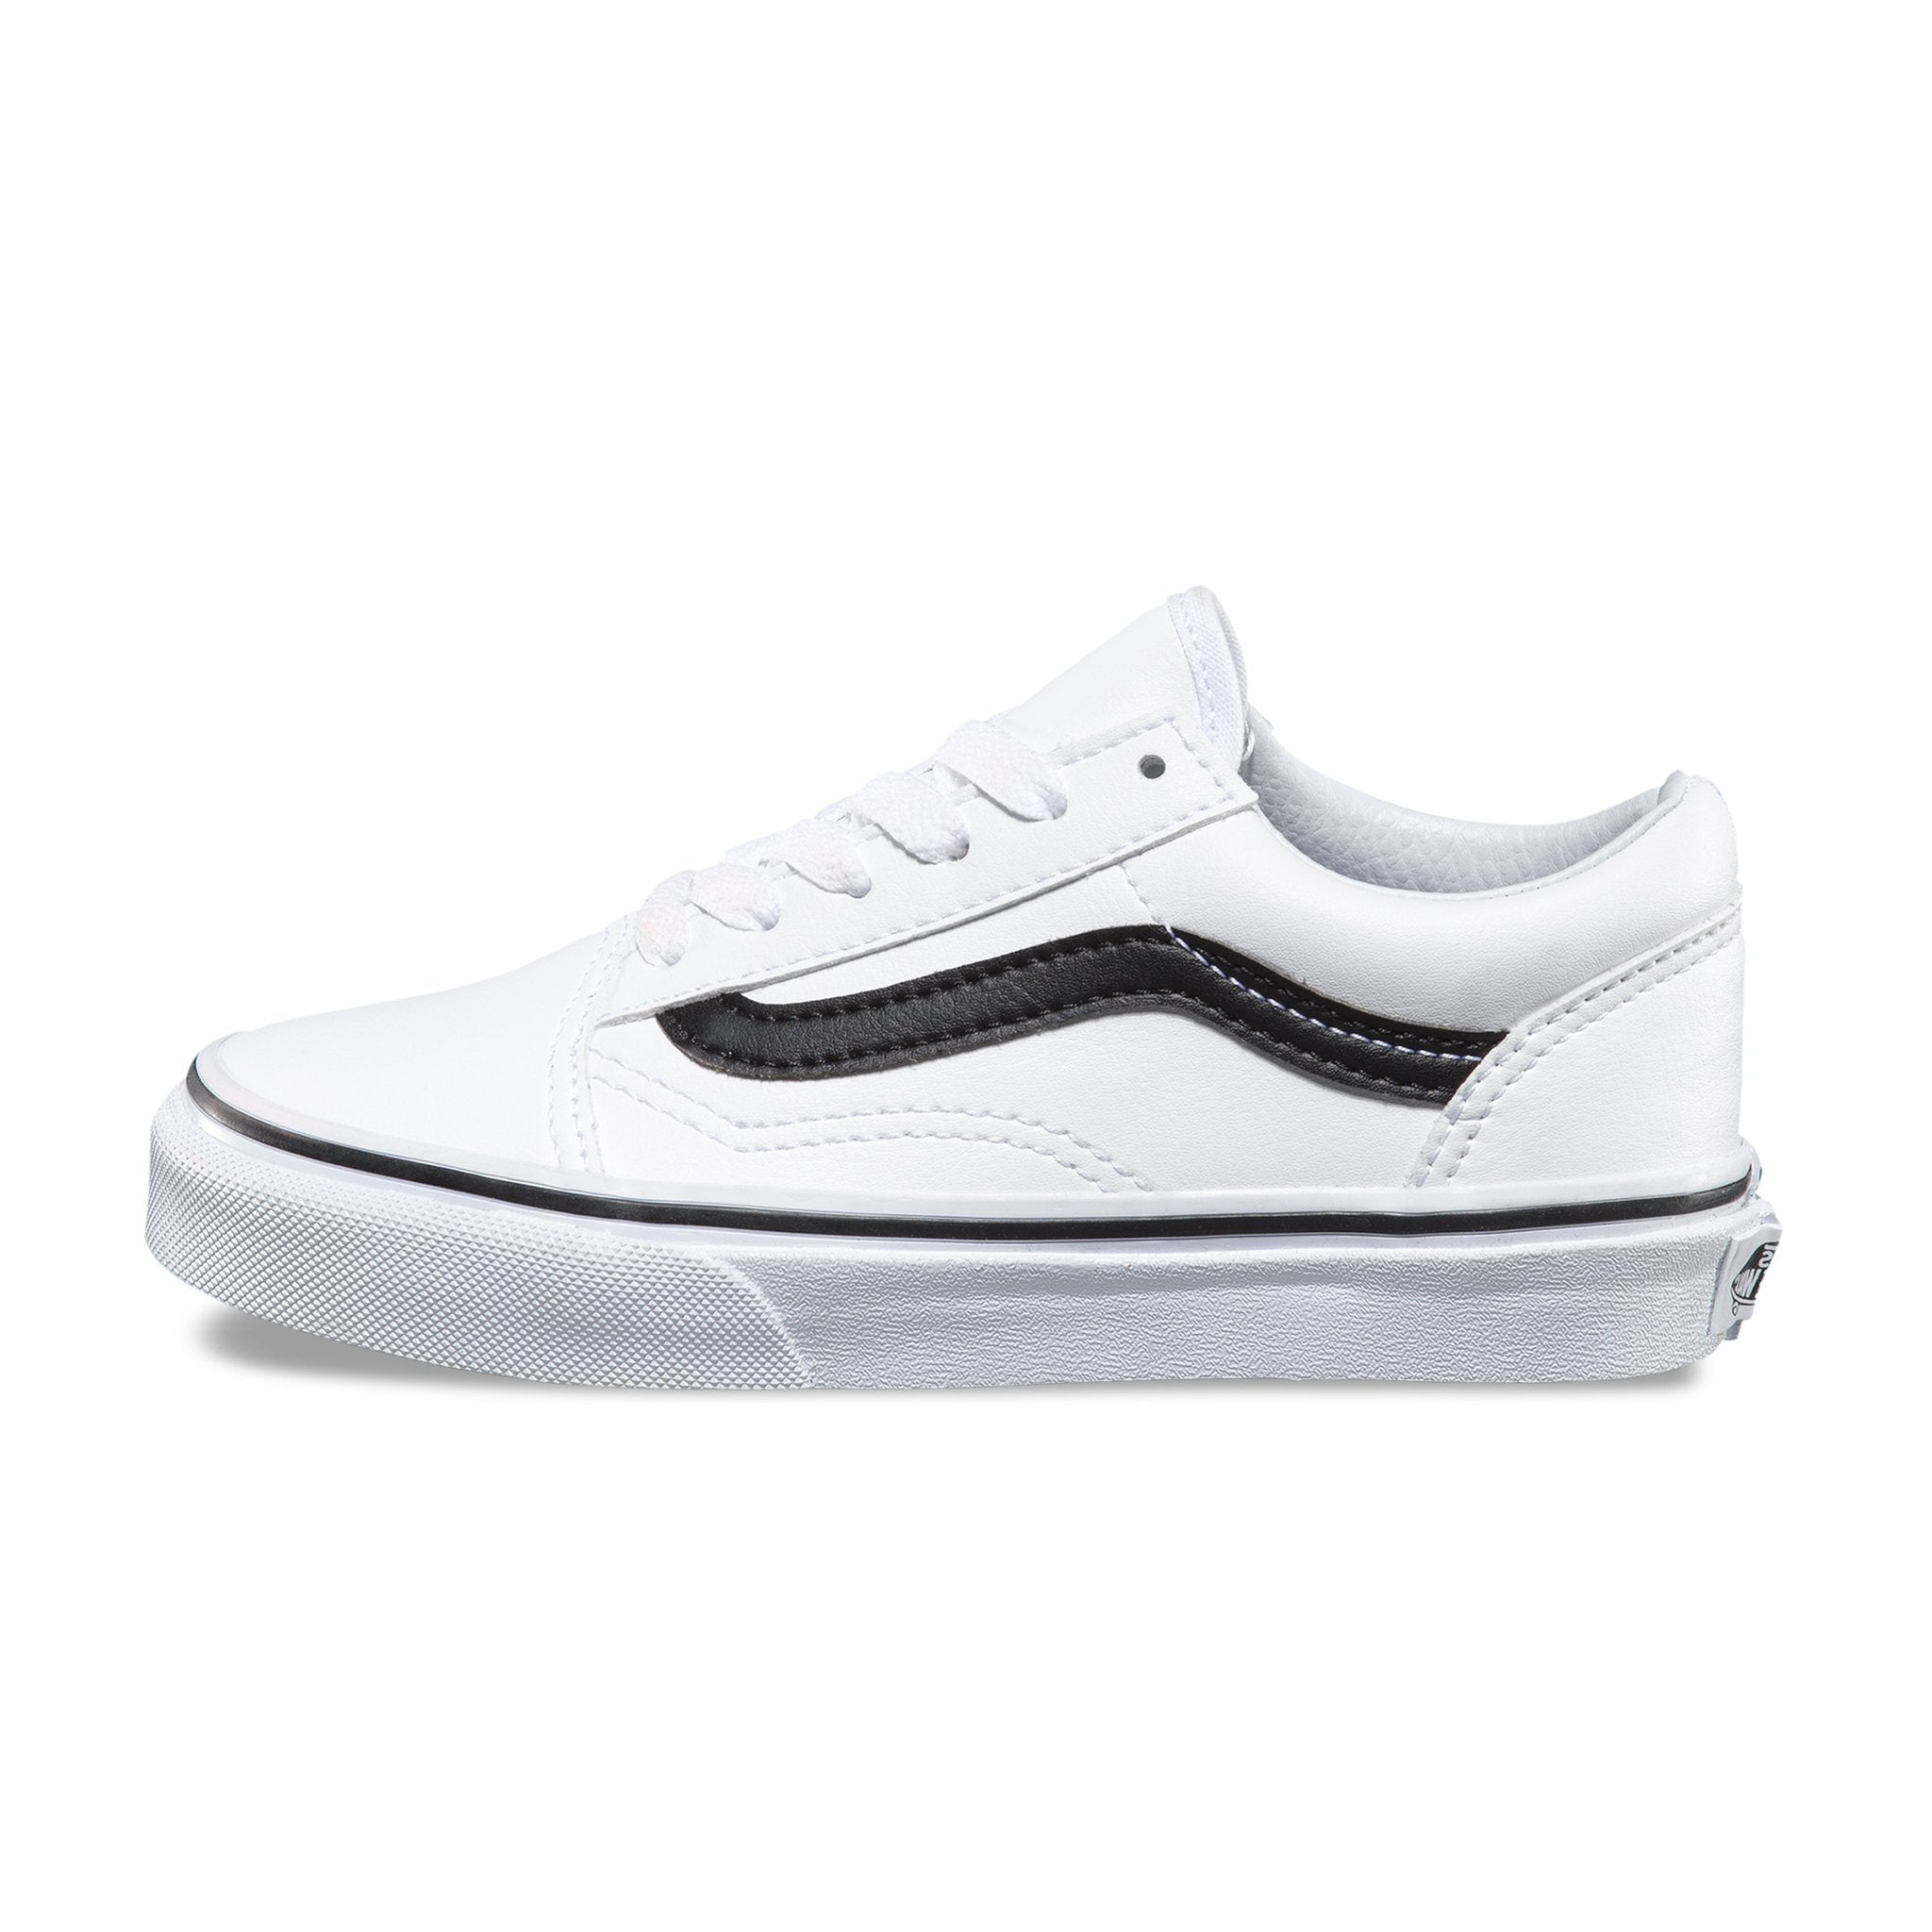 04049c799d VANS Classic Tumble Old Skool - White-Black – Finger in the nose